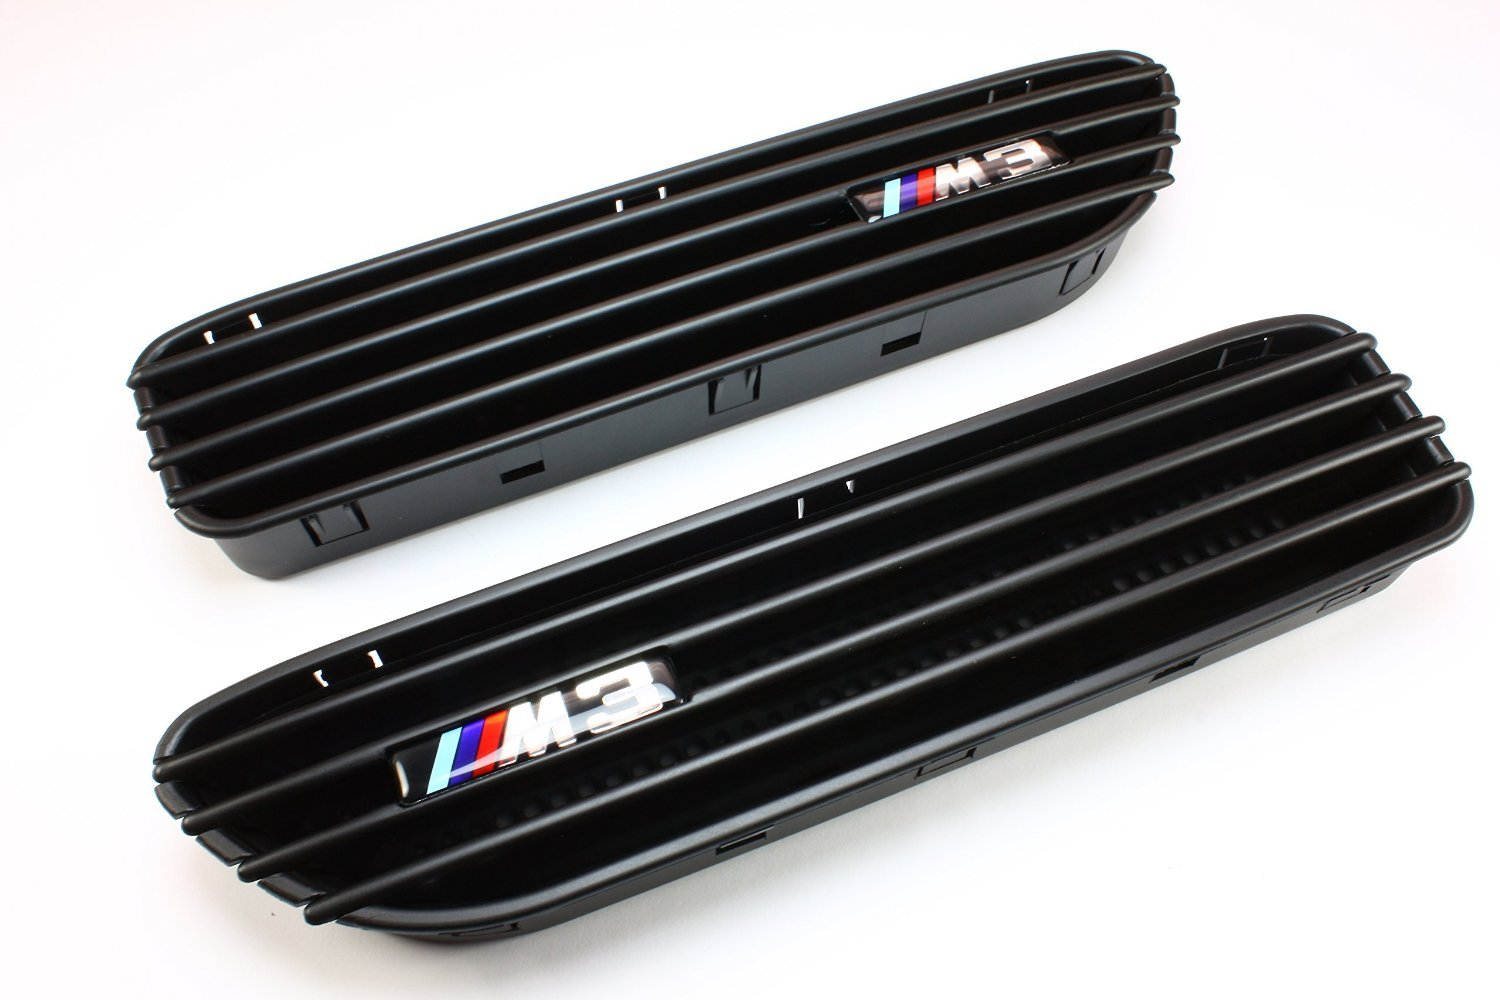 Z10 2001-2006 E46 M3 2D Front Grill with Side Fender Grill Vents Black